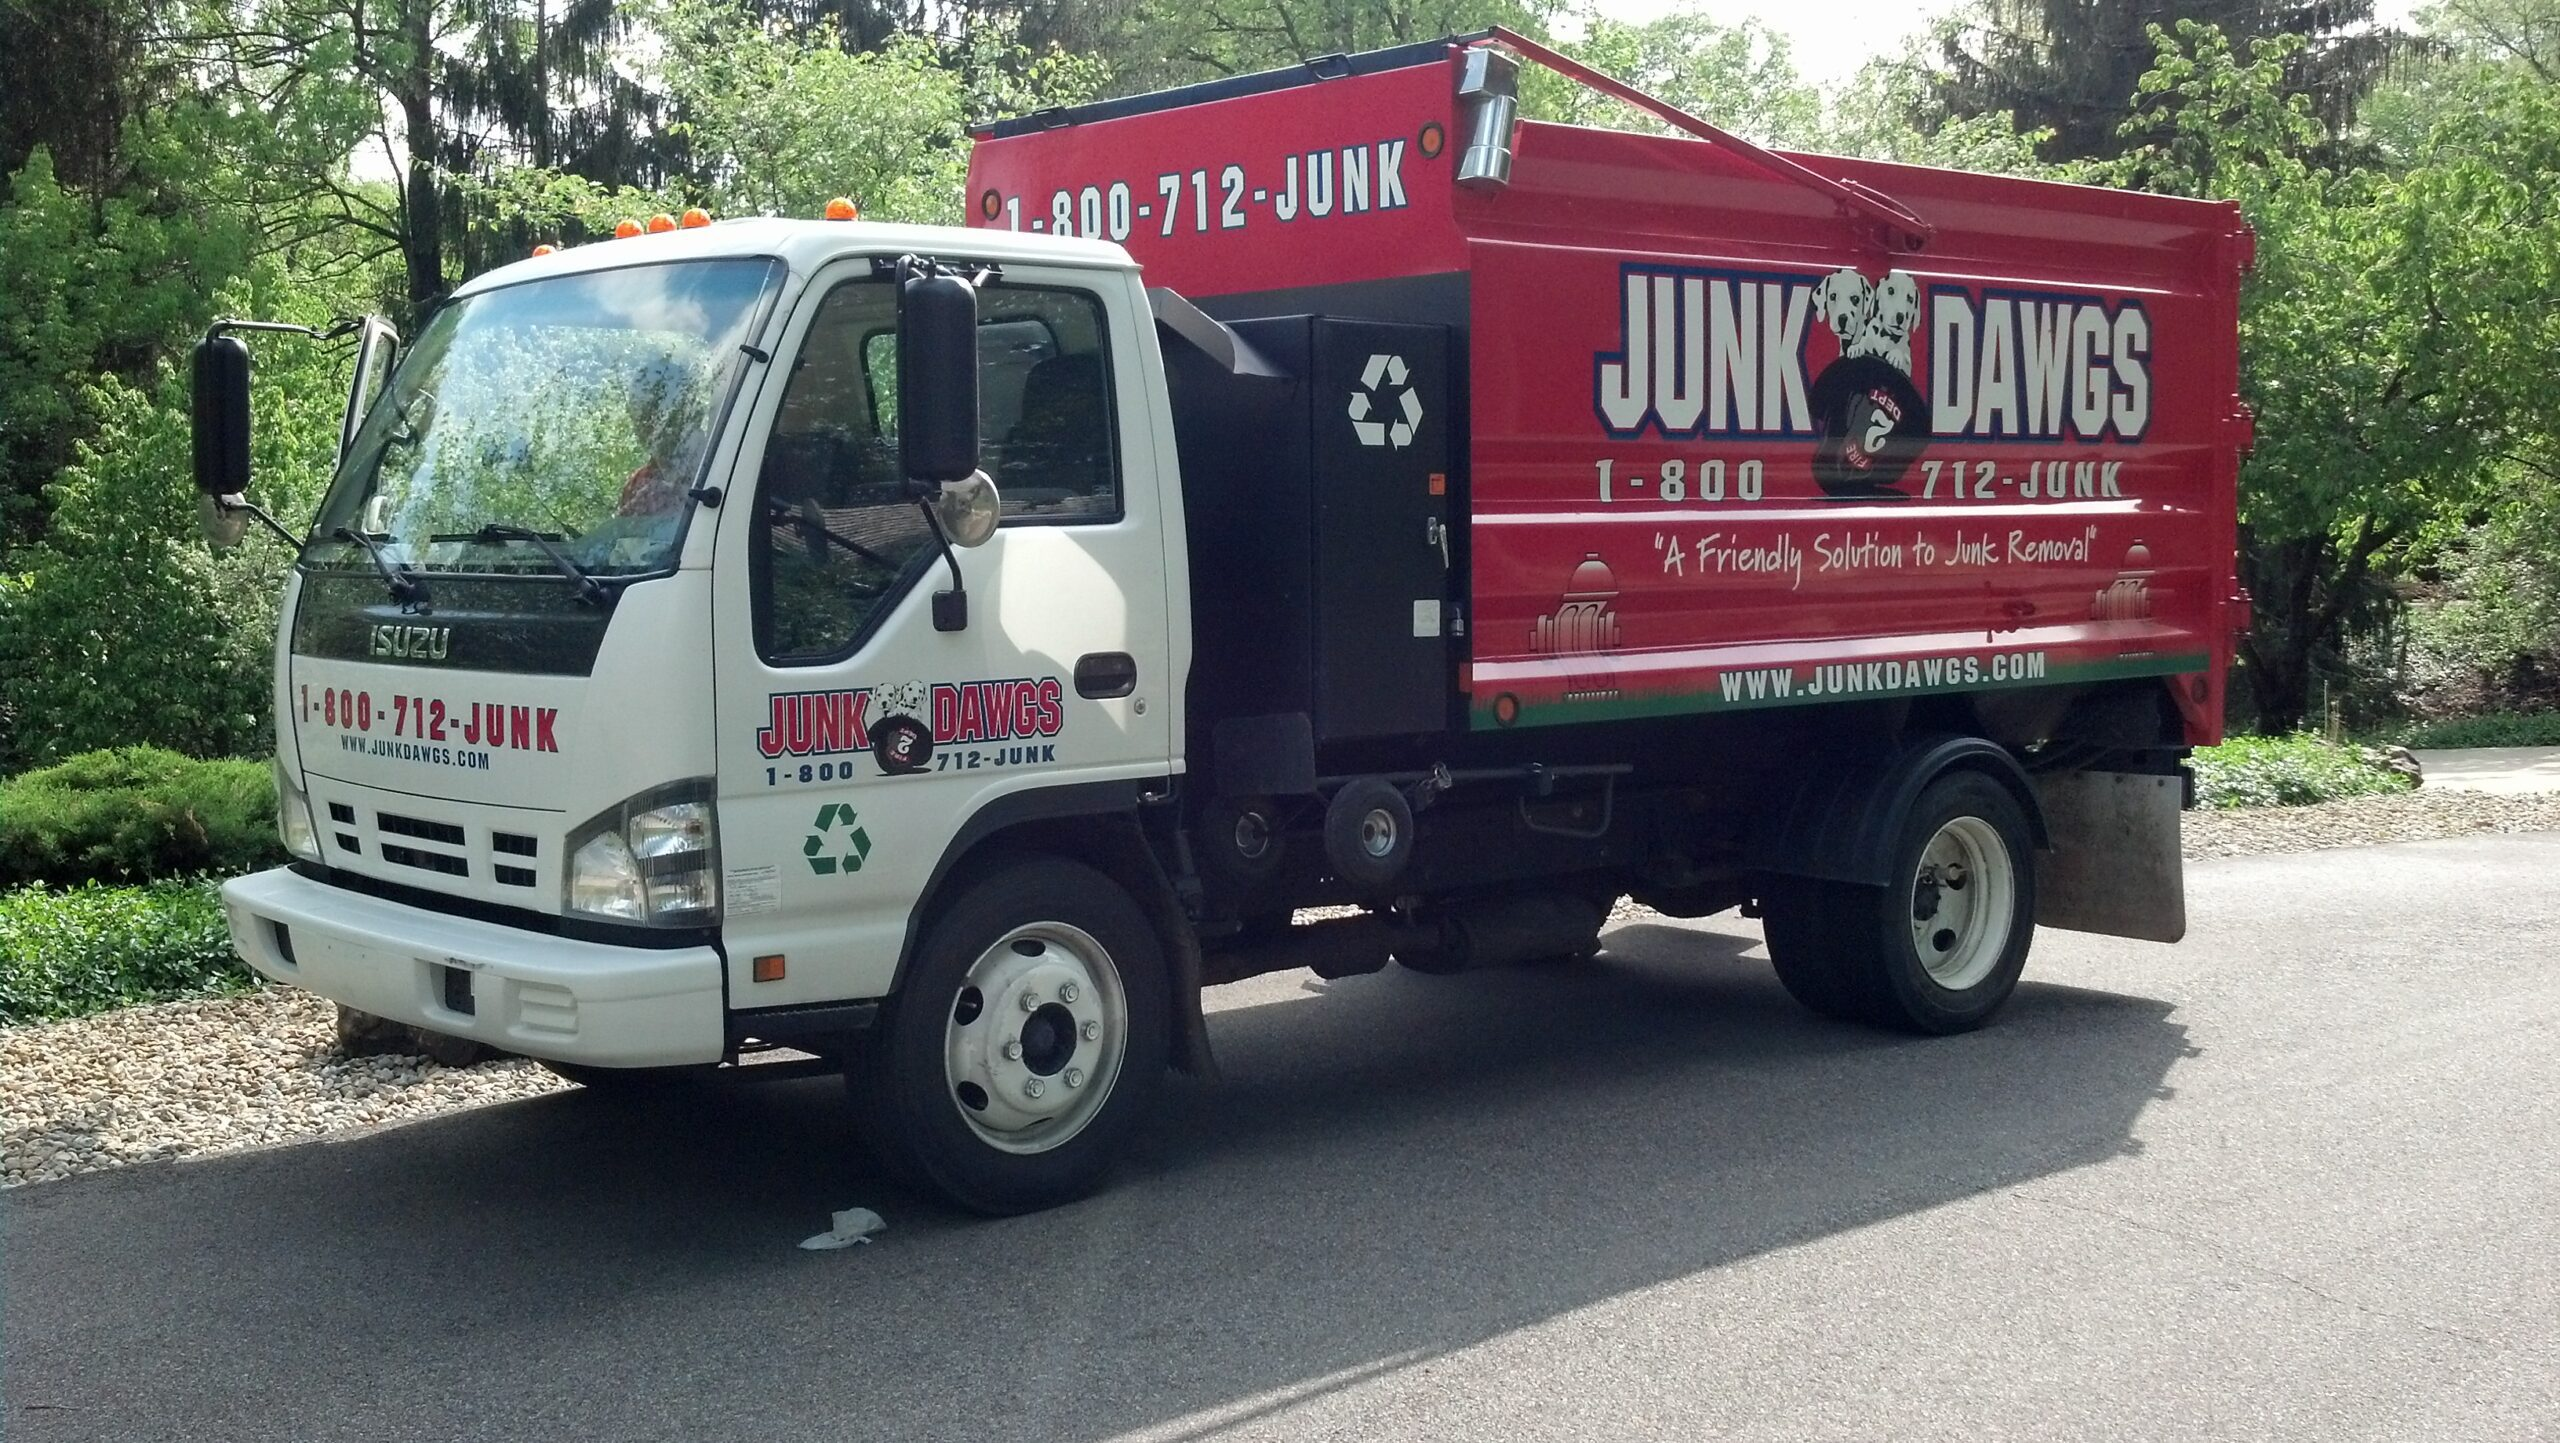 How big are junk removal trucks? |Fire Dawgs Junk Removal